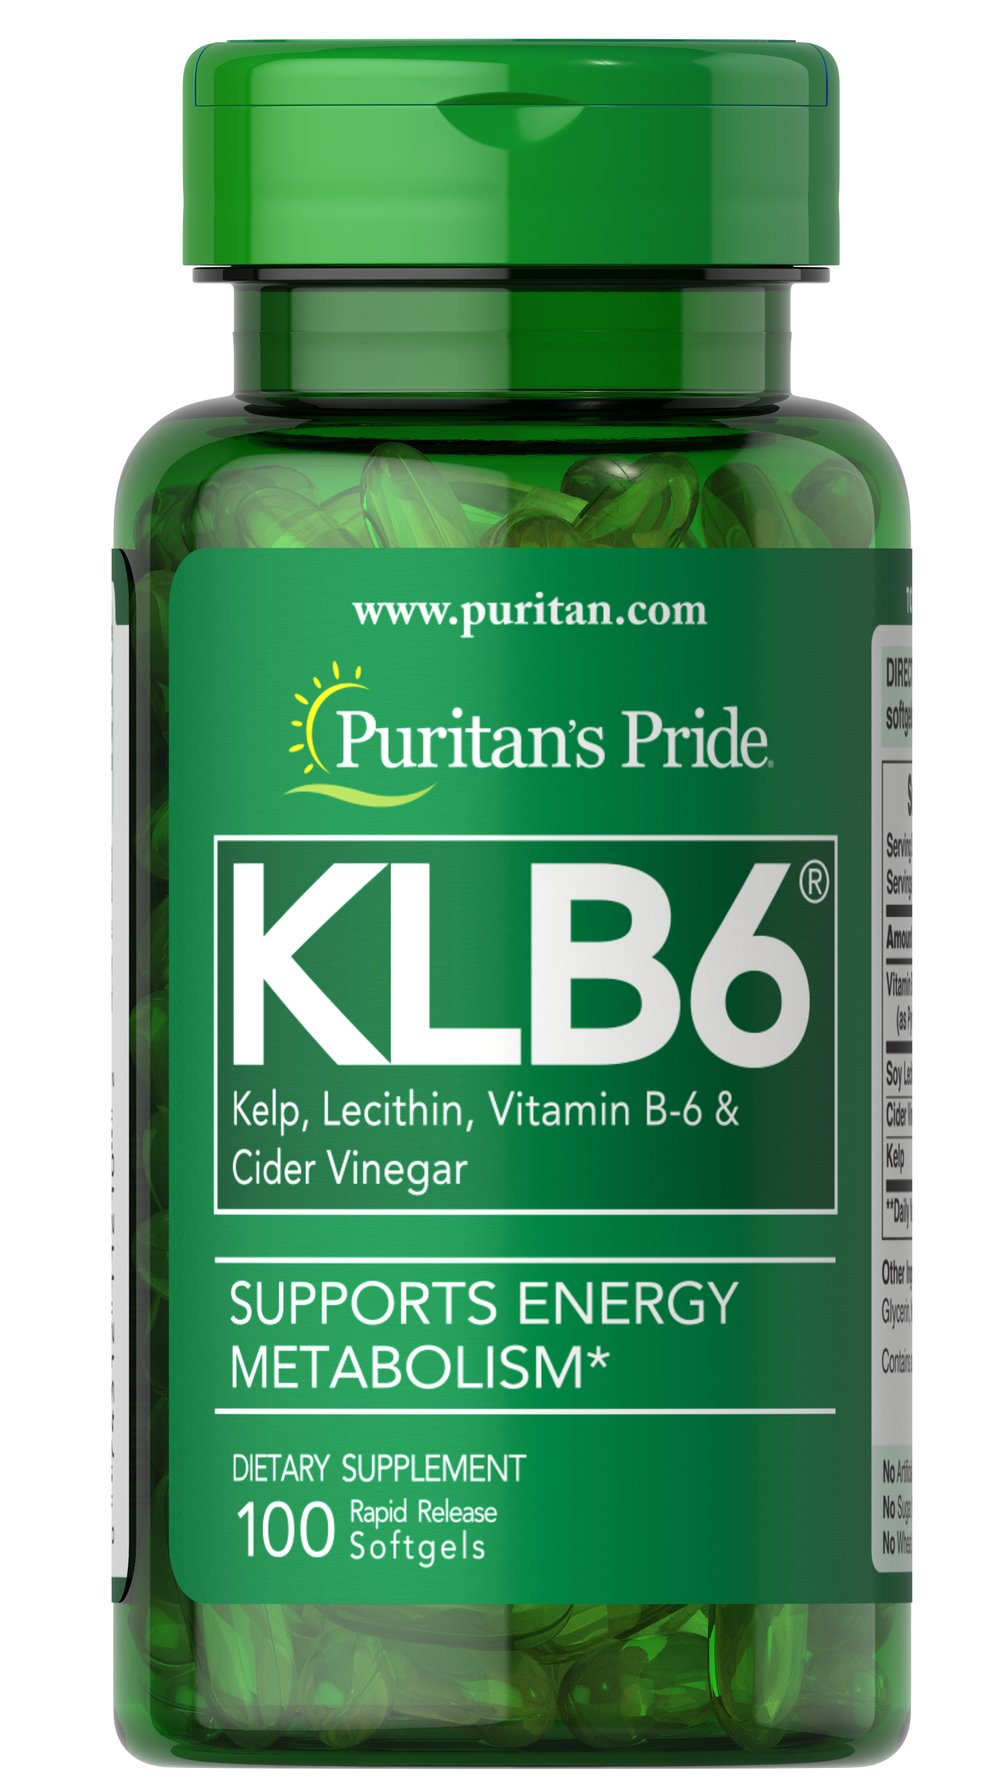 KLB6 Kelp Complex <p>Kelp, Lecithin,  Vitamin B-6 and Cider Vinegar,  all-in-one softgel.  Kelp works to maintain a healthy thyroid; Lecithin is an excellent natural source of choline and inositol; B-6 functions as a coenzyme involved in protein and fat metabolism; and Cider Vinegar is a natural and rich source of potassium and other associated minerals.**</p> 100 Softgels  $10.29